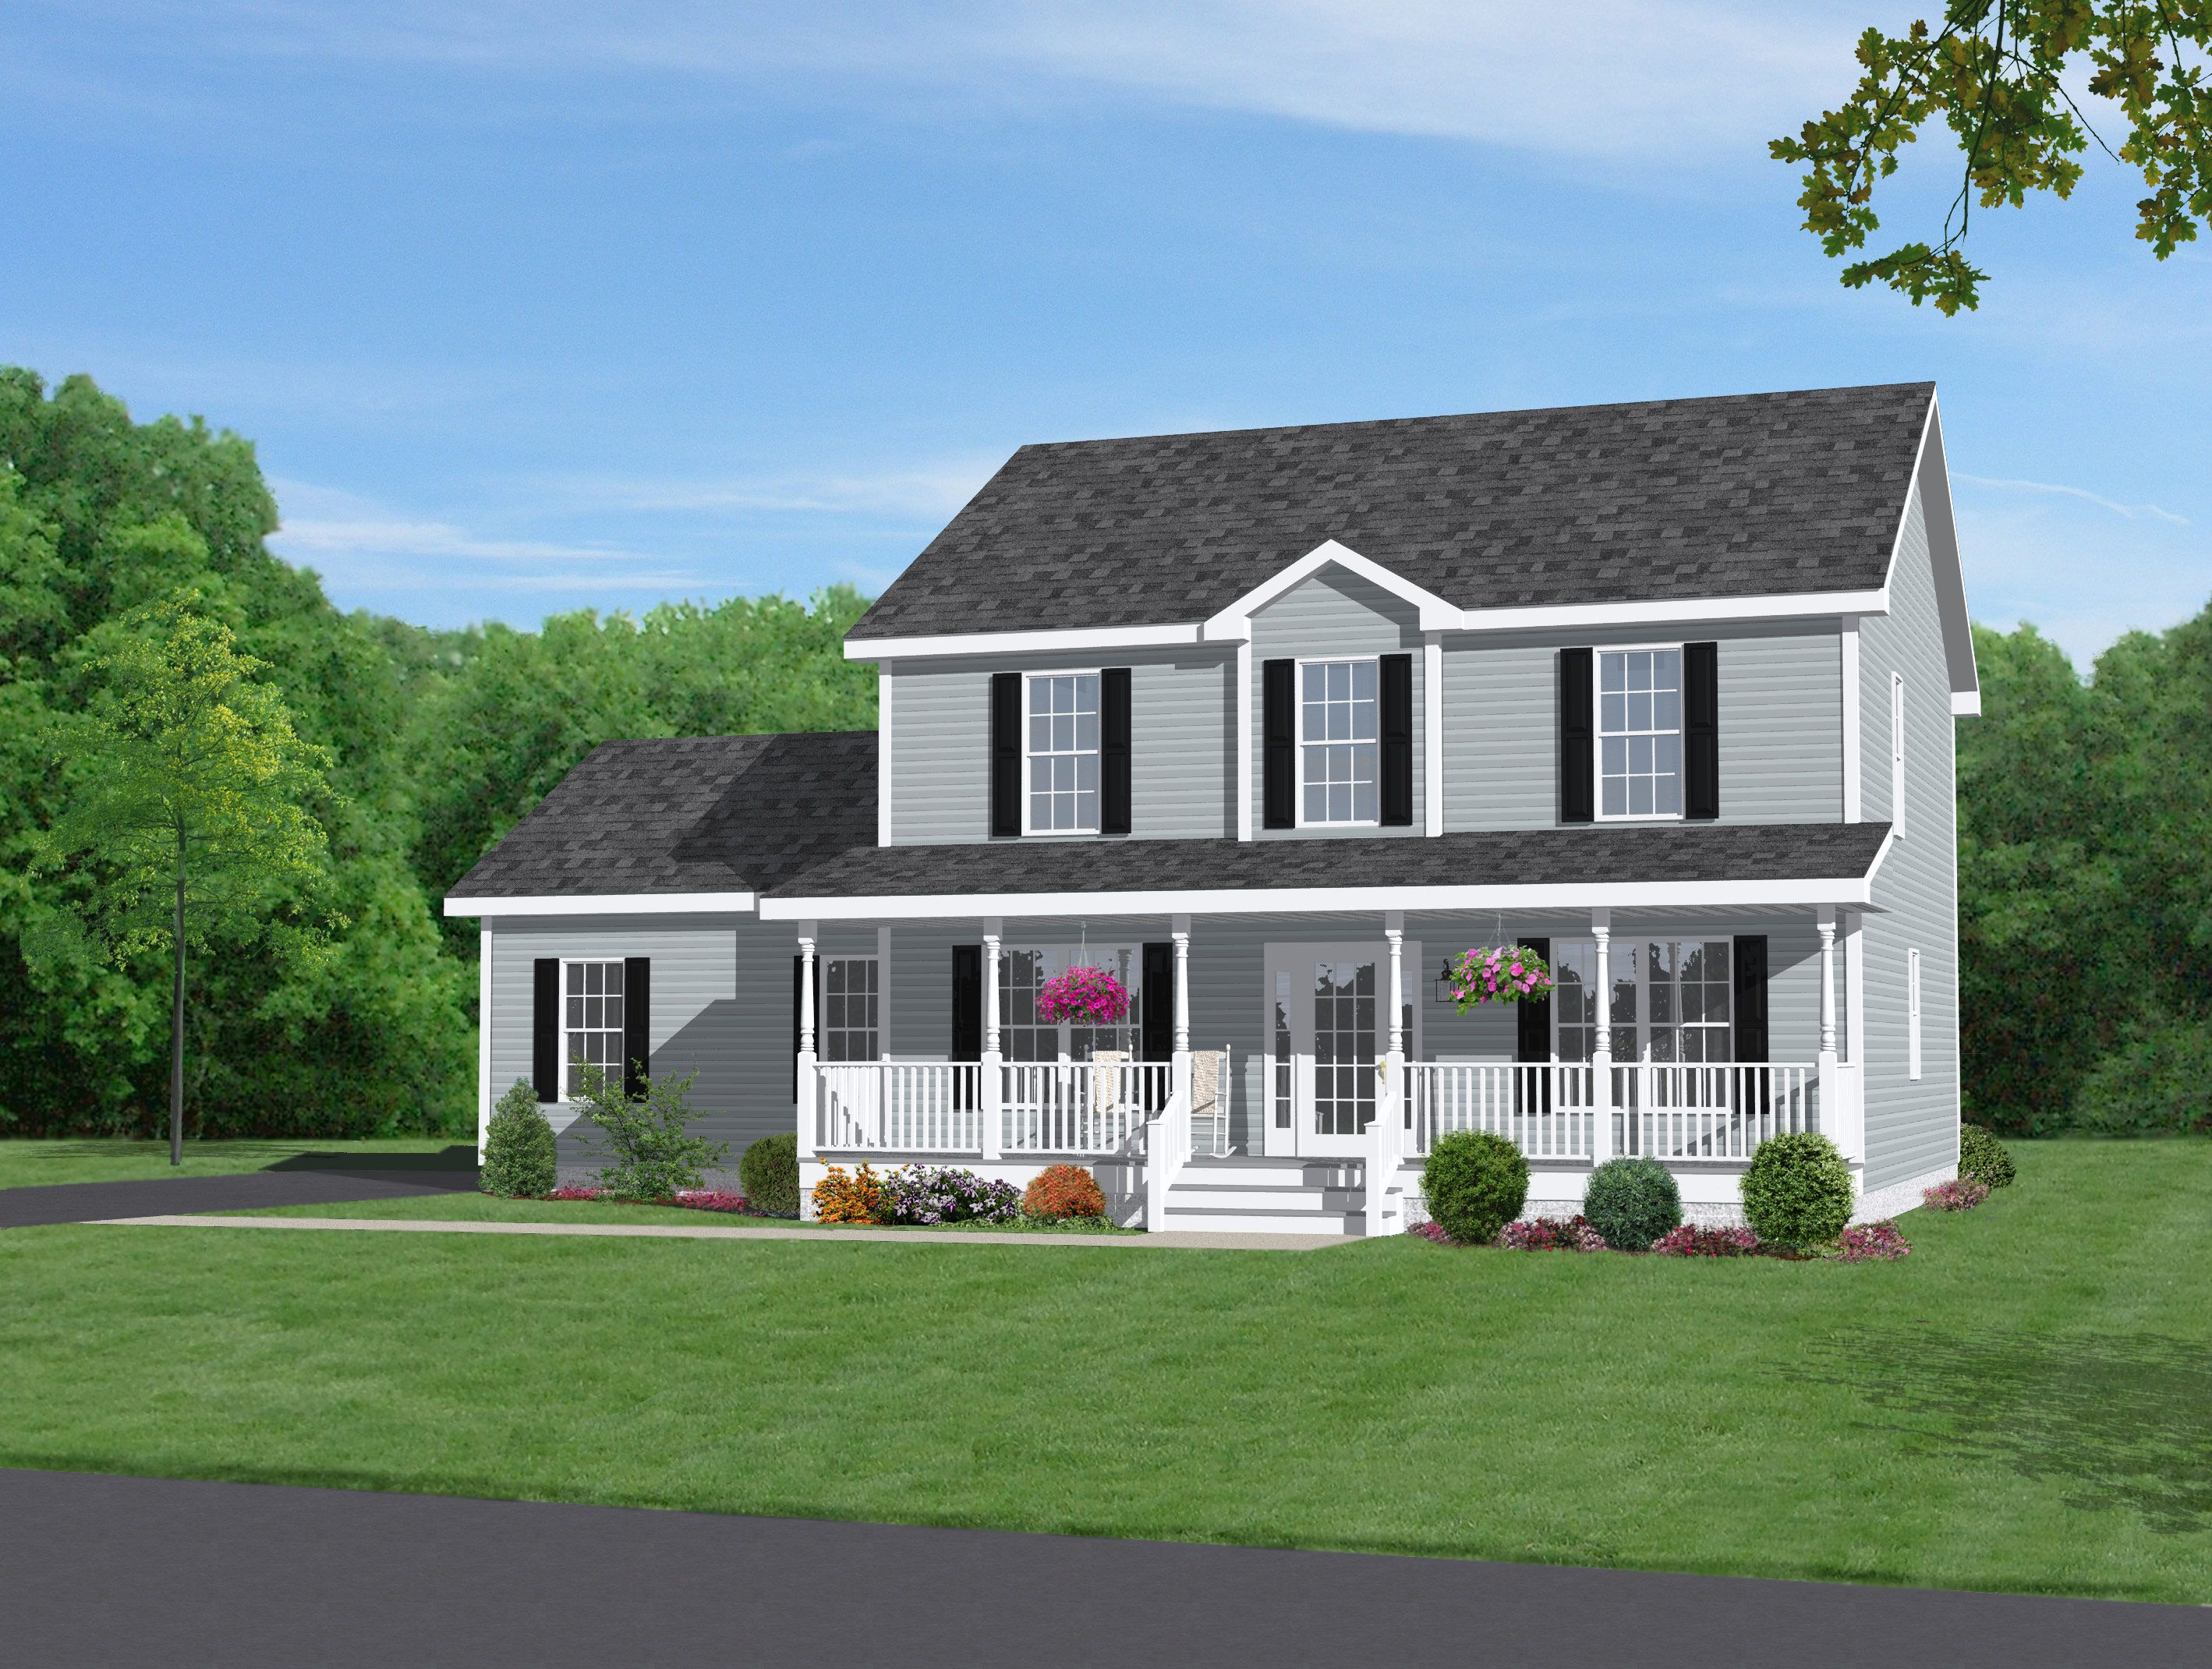 Two story home with beautiful front porch dream home for Beautiful two story homes